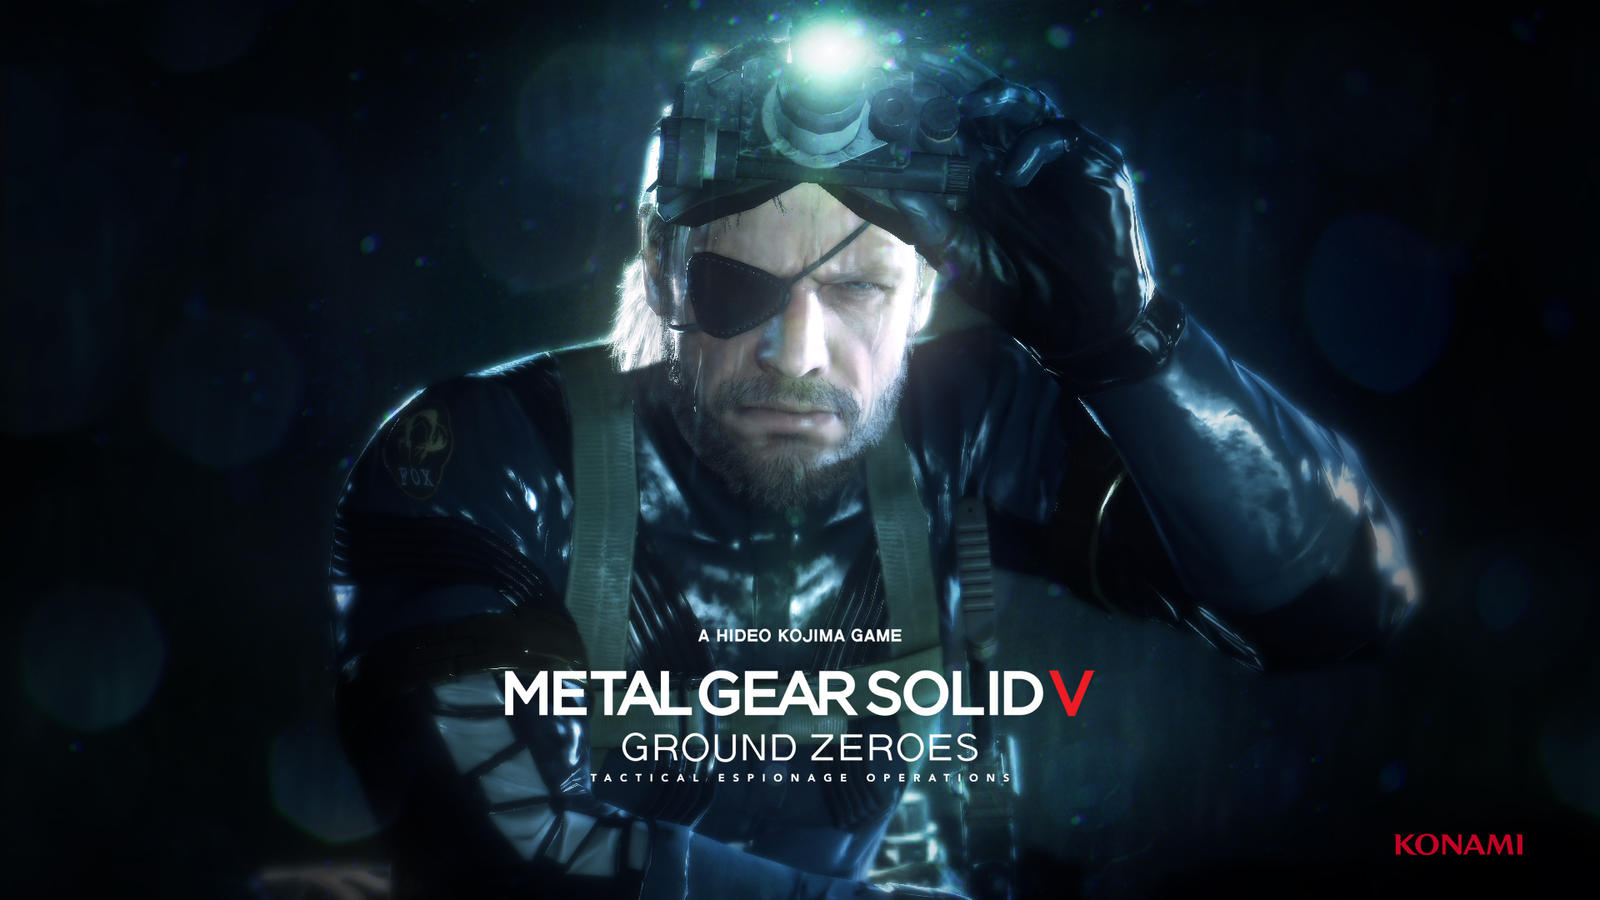 Metal Gear Solid V Wallpaper: Metal Gear Solid 5 Ground Zeroes Wallpaper By SolidAlexei